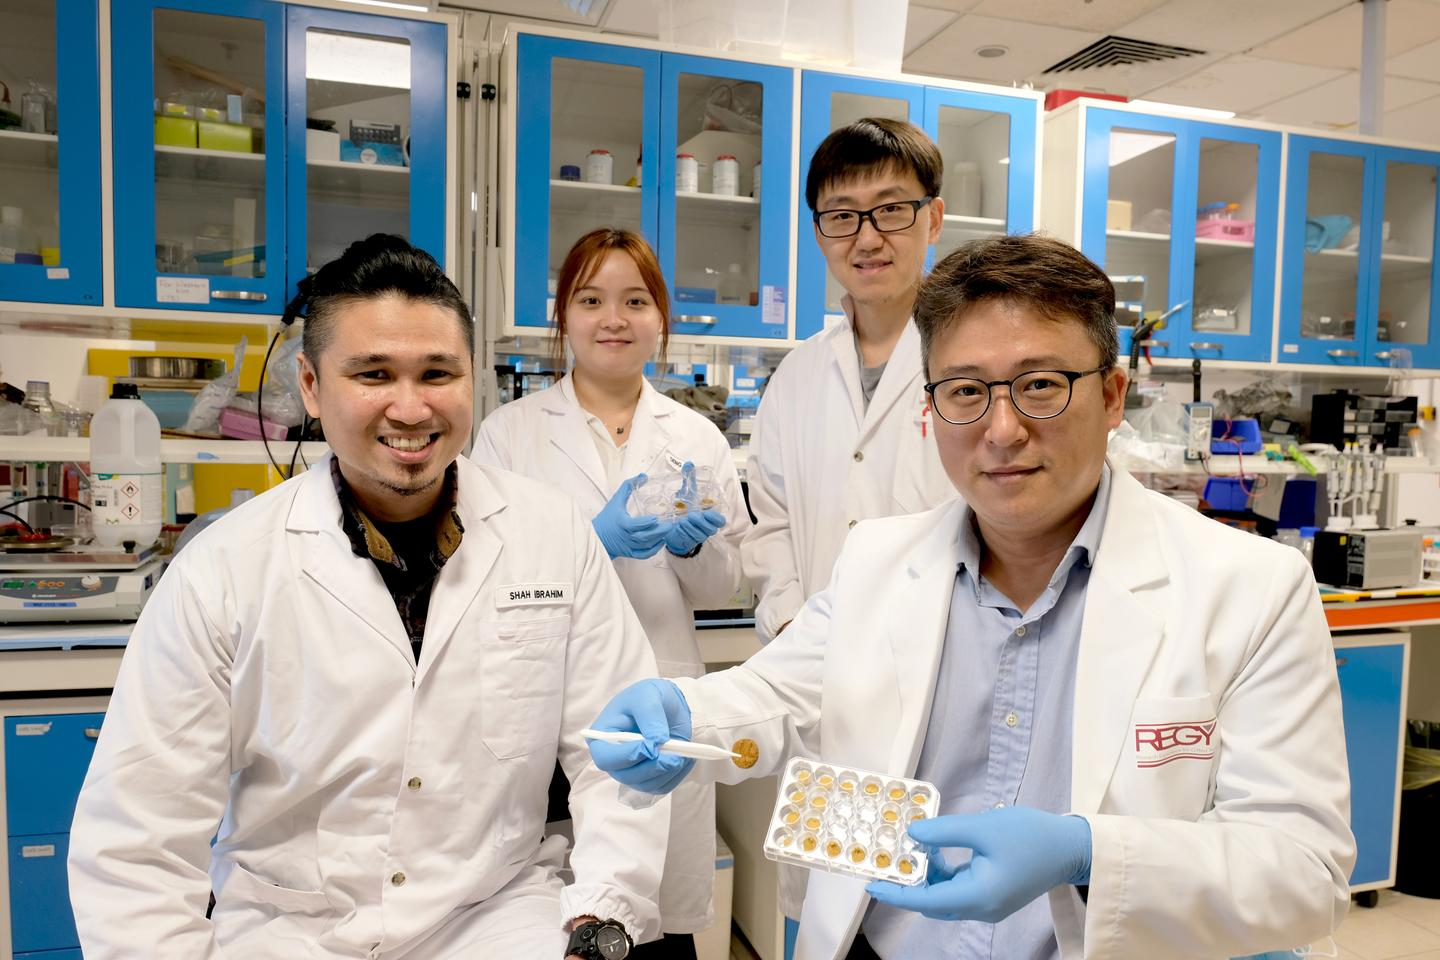 Key members of the research team, from left to right: NTU PhD student Mohammed Shahrudin Ibrahim, NTU Masters student Deng Jingyu, NTU research fellow Dr. Zhao Ze, and NTU Prof. Cho Nam-Joon